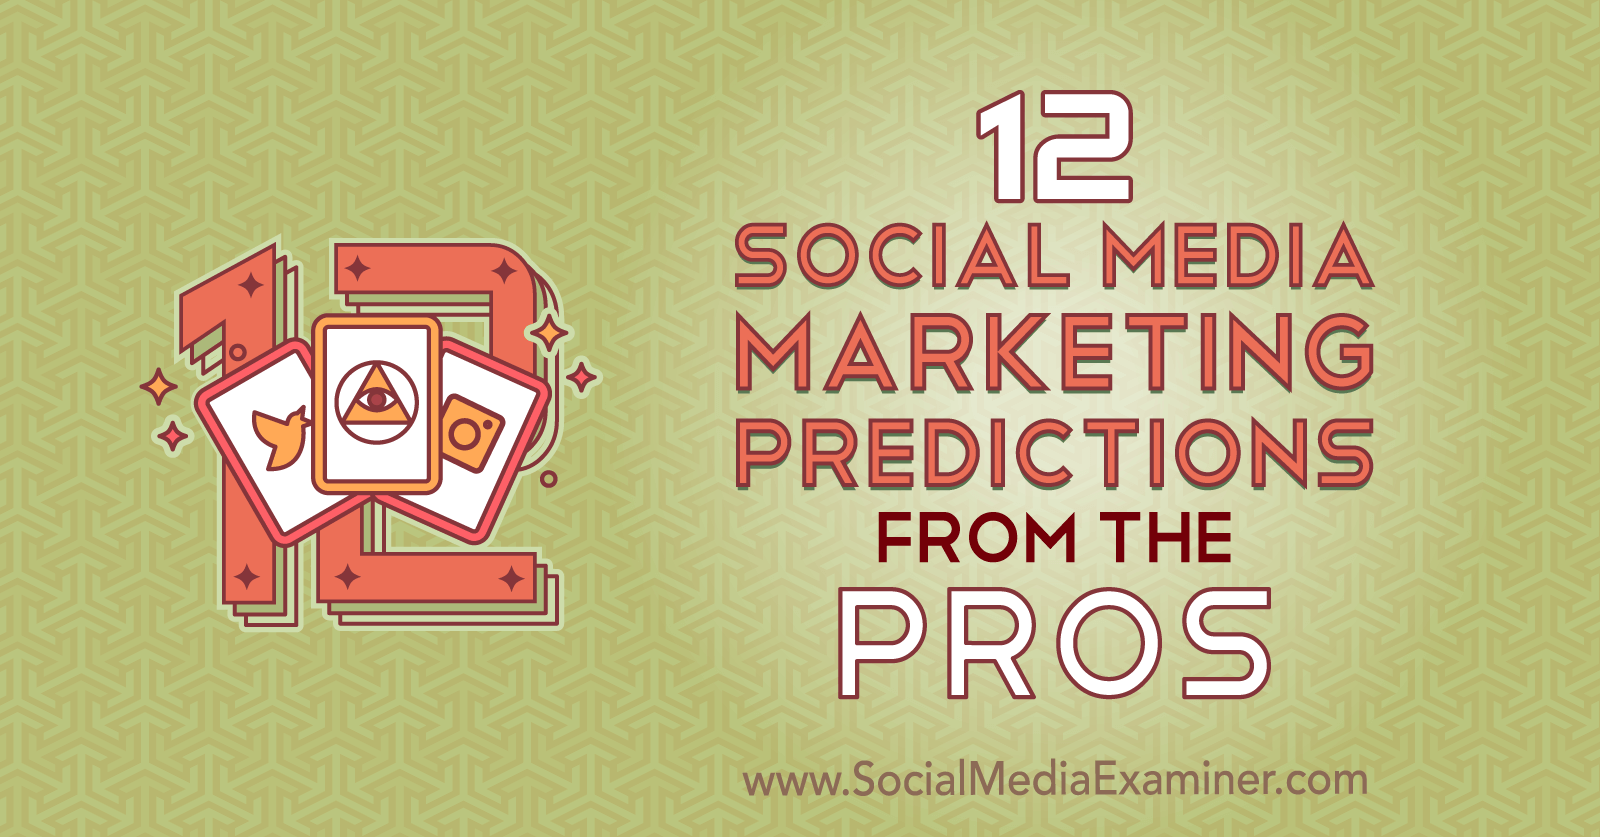 Best Times To Post On Social Media 2020.12 Social Media Marketing Predictions From The Pros Social